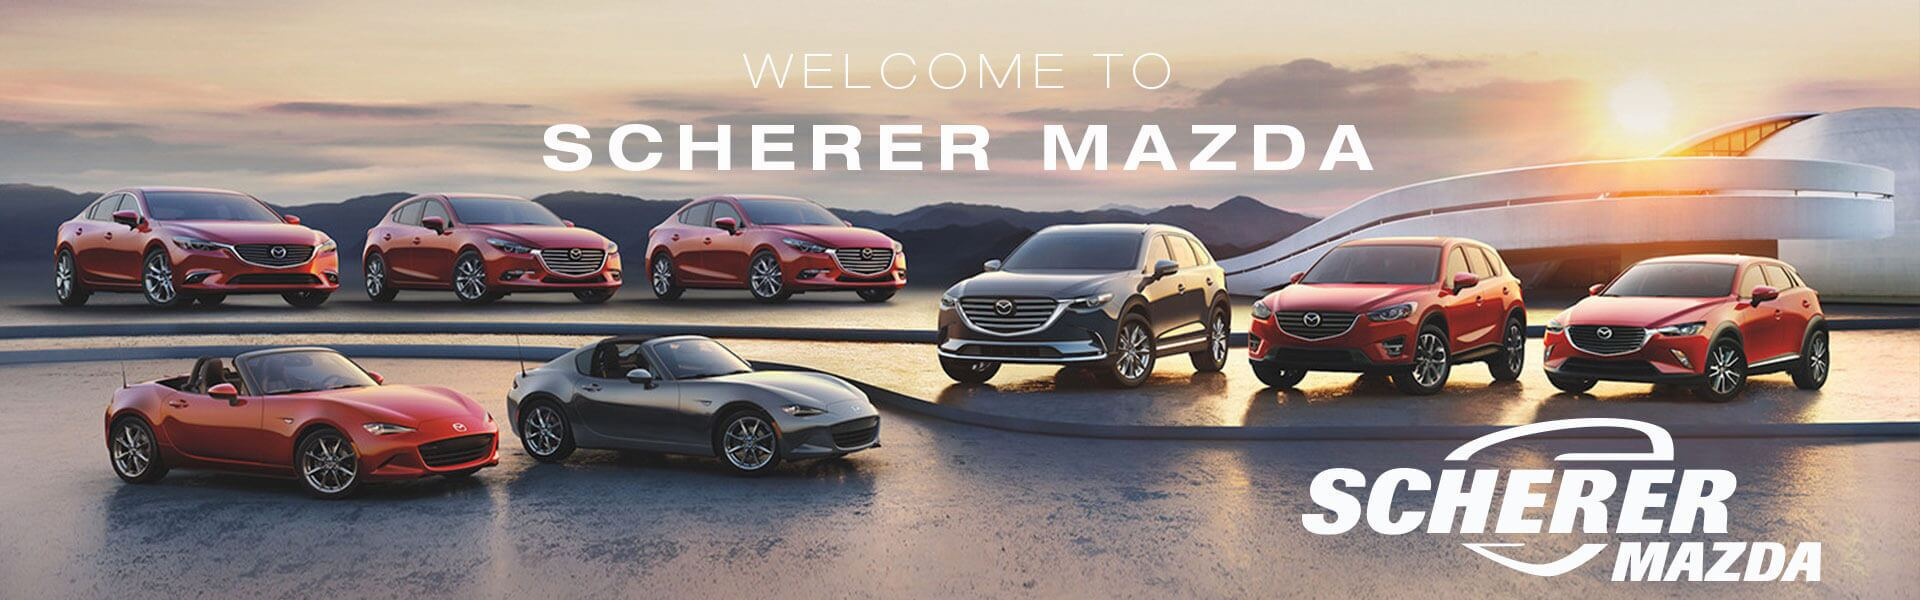 Car Dealerships Peoria Il >> Mazda Dealership Peoria IL | Used Cars Scherer Mazda